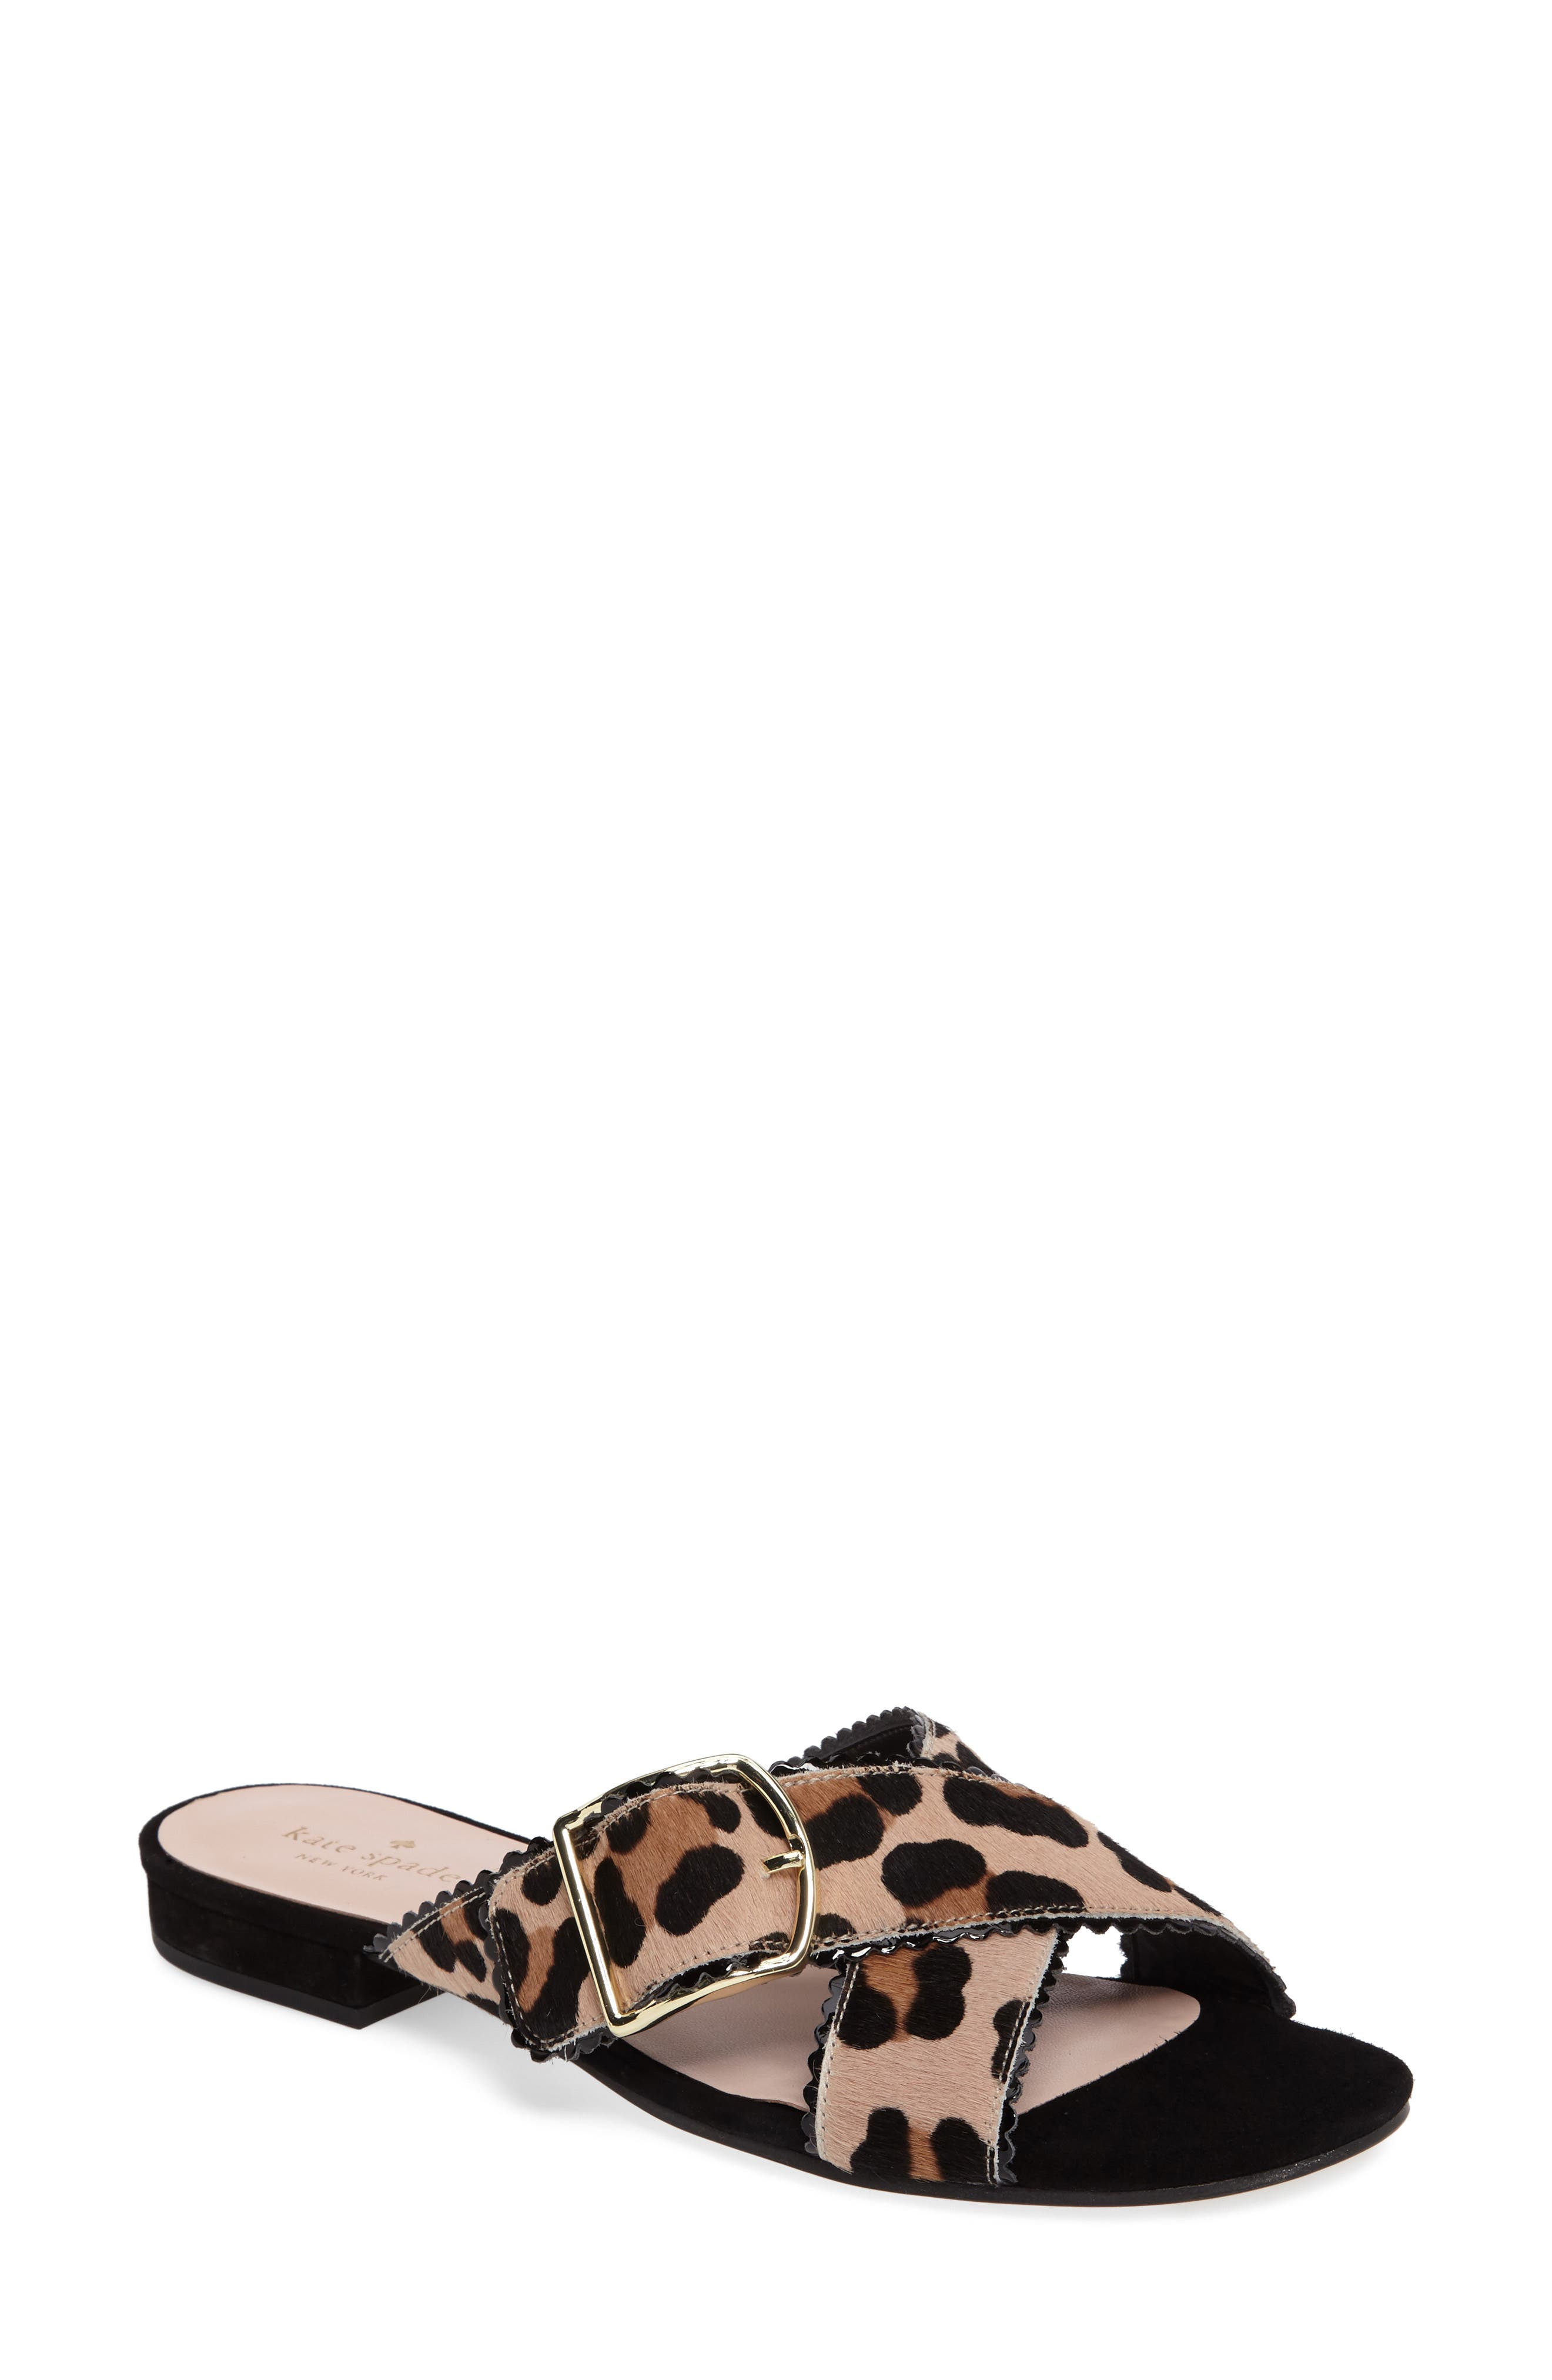 faris sandal,                         Main,                         color, Blush/ Fawn Leopard